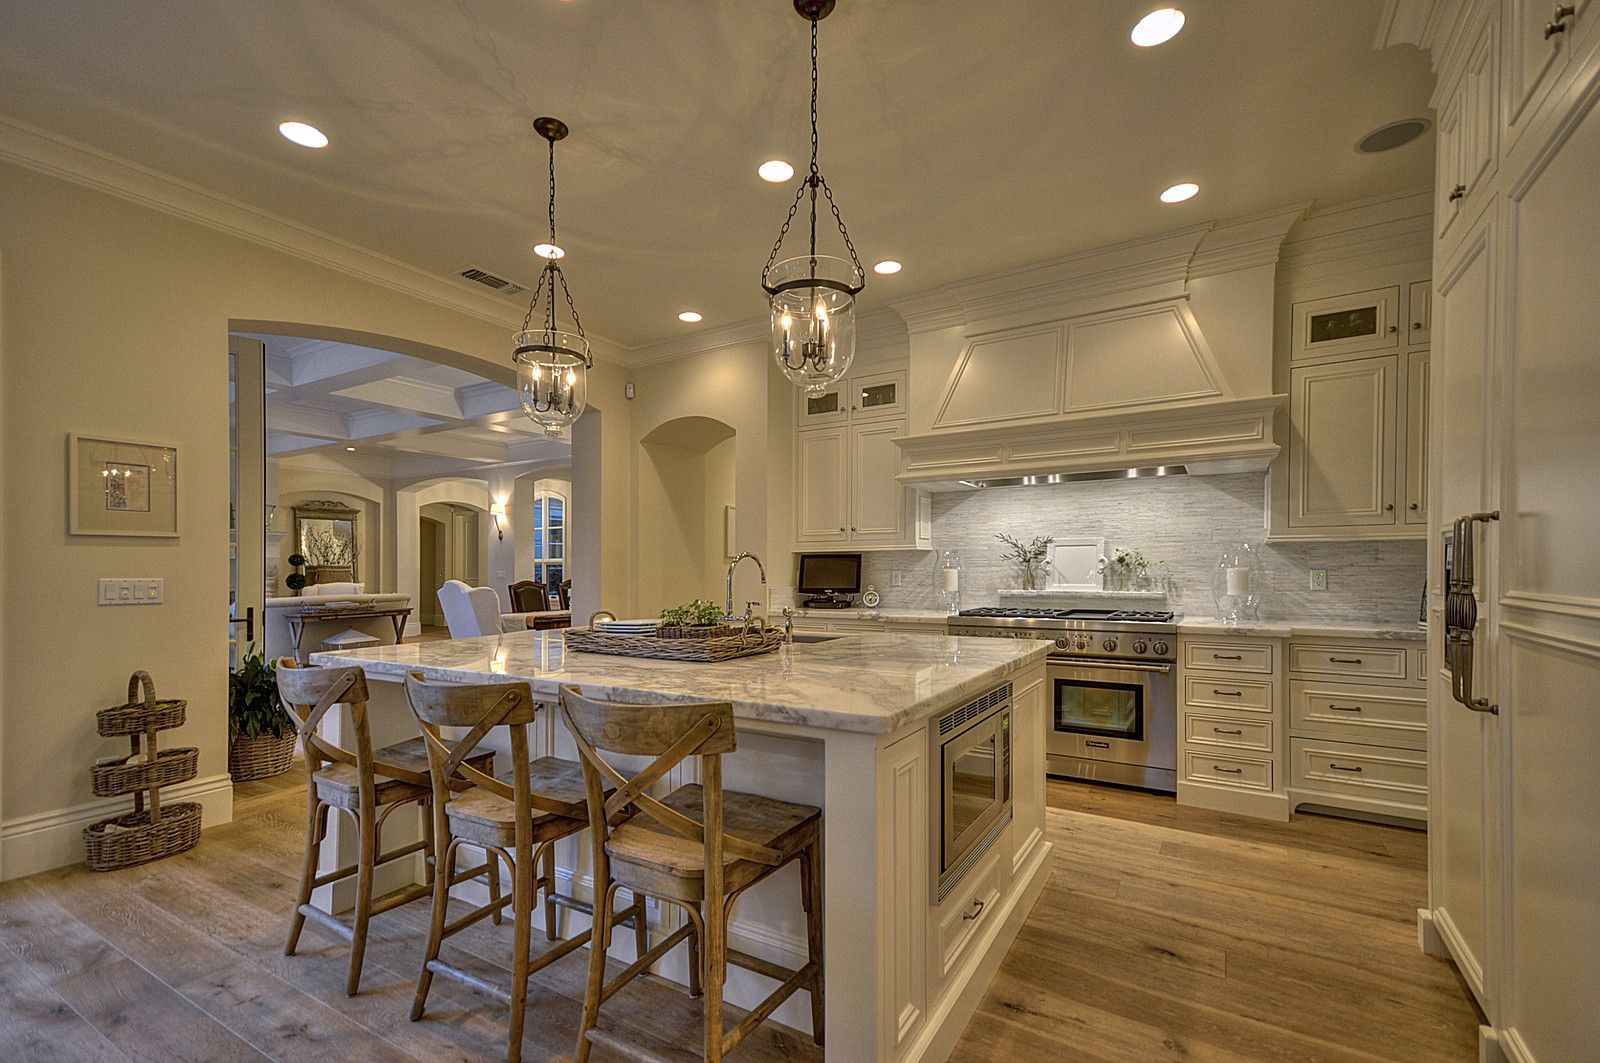 Gorgeous Kitchen | Homes We Built - French Provenchial | Pinterest ...